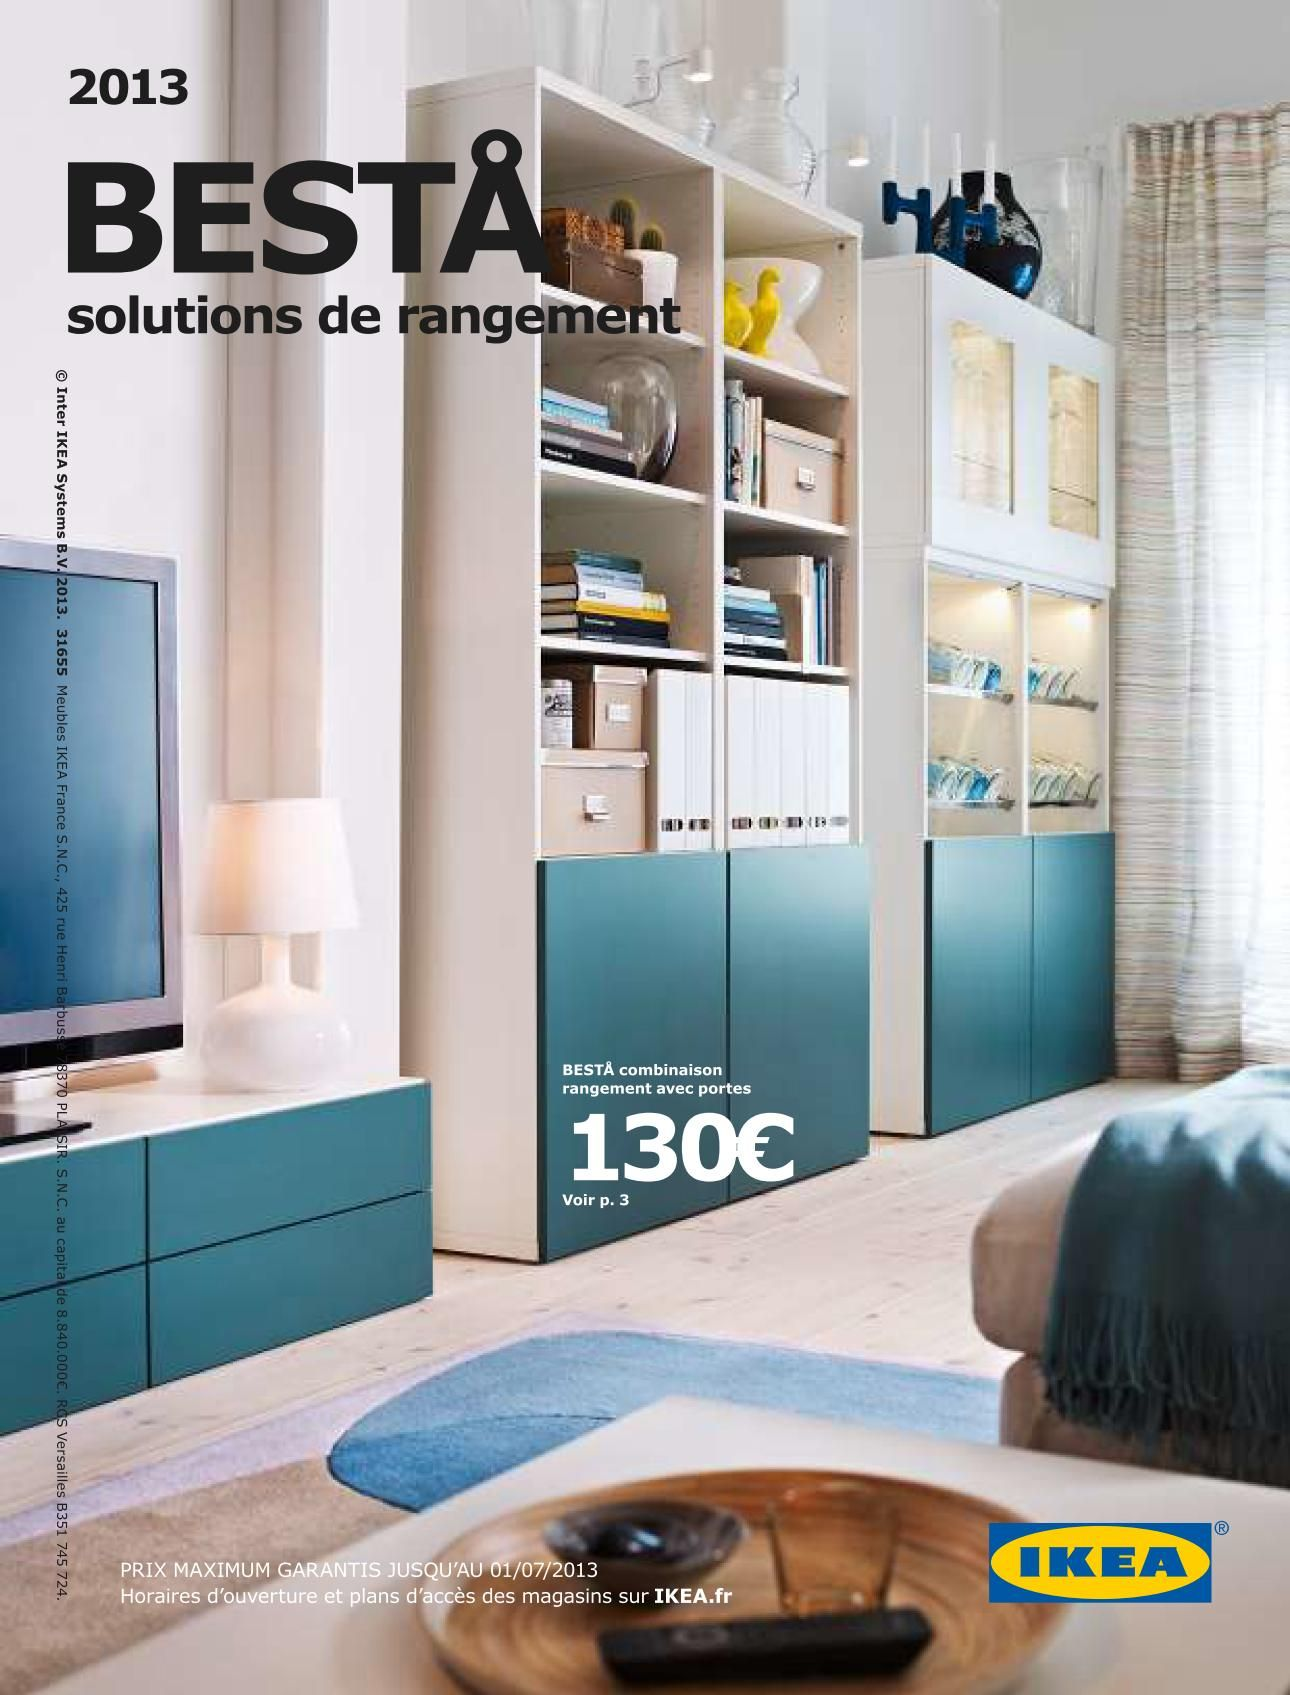 Ikea besta solutions de rangement ikea pinterest meuble salon parents et appartements Meuble besta ikea rangement